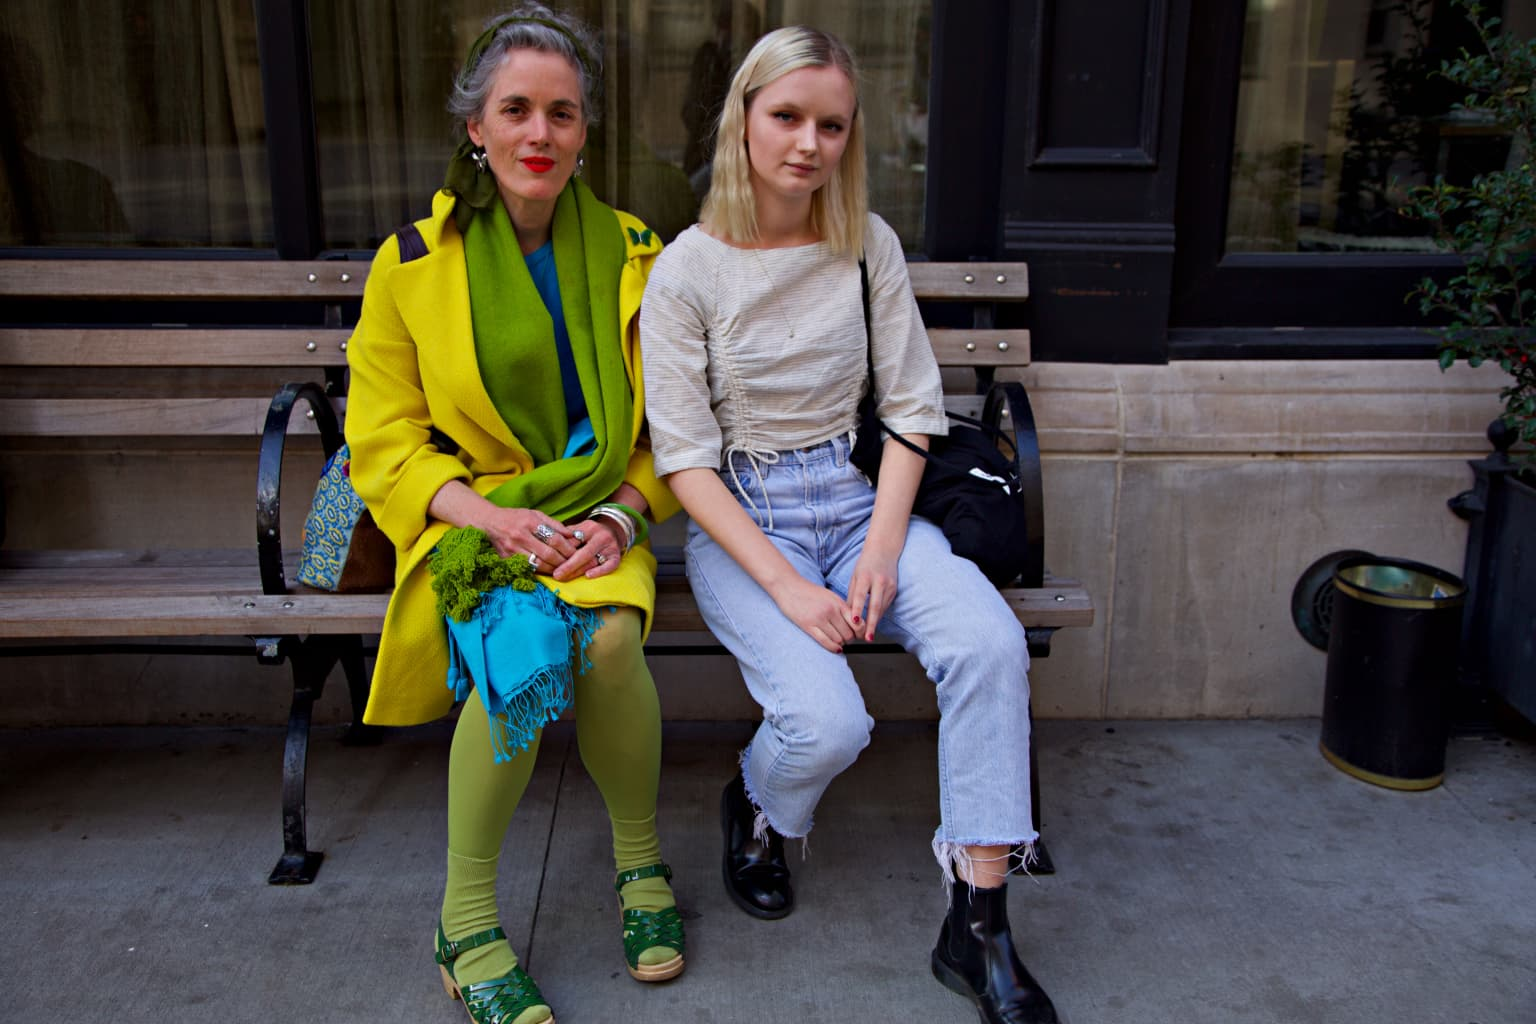 Stylish Mothers and Daughters